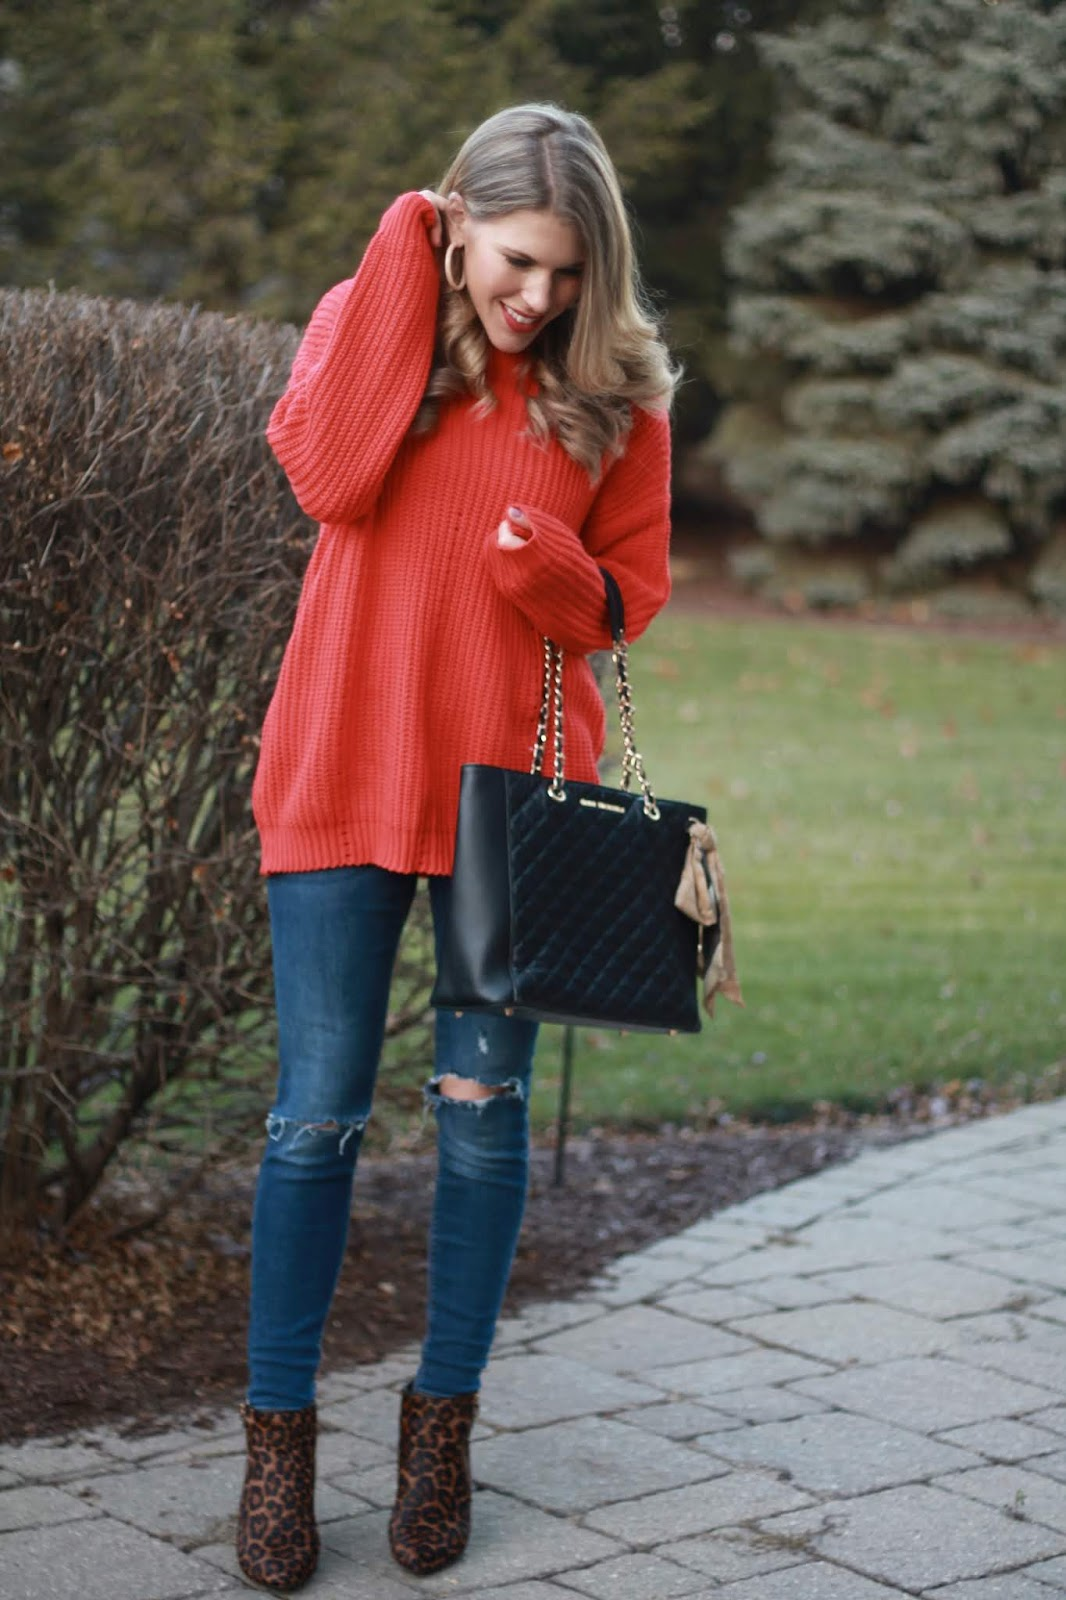 orange eyelet tunic, distressed jeans, leopard calf hair booties, tortoise shell earrings, black quilted leather tote